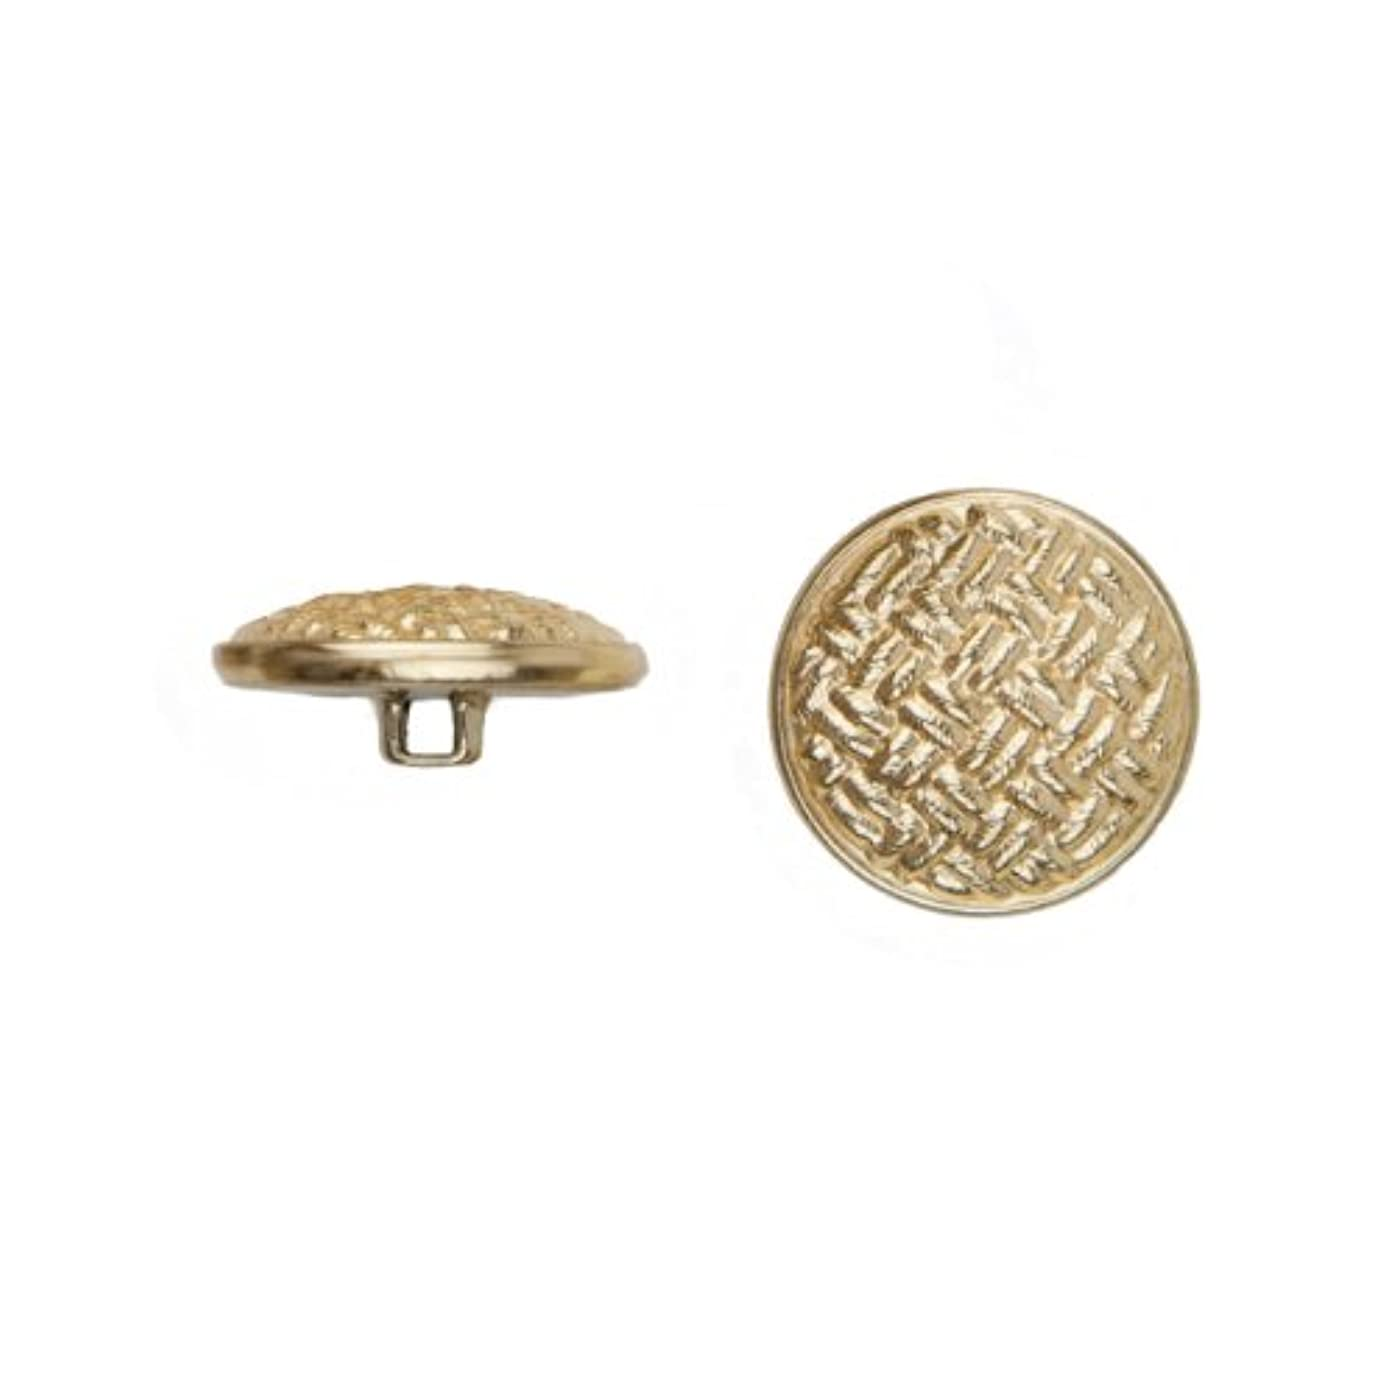 C&C Metal Products 5037 Weave Metal Button, Size 30 Ligne, Gold, 36-Pack